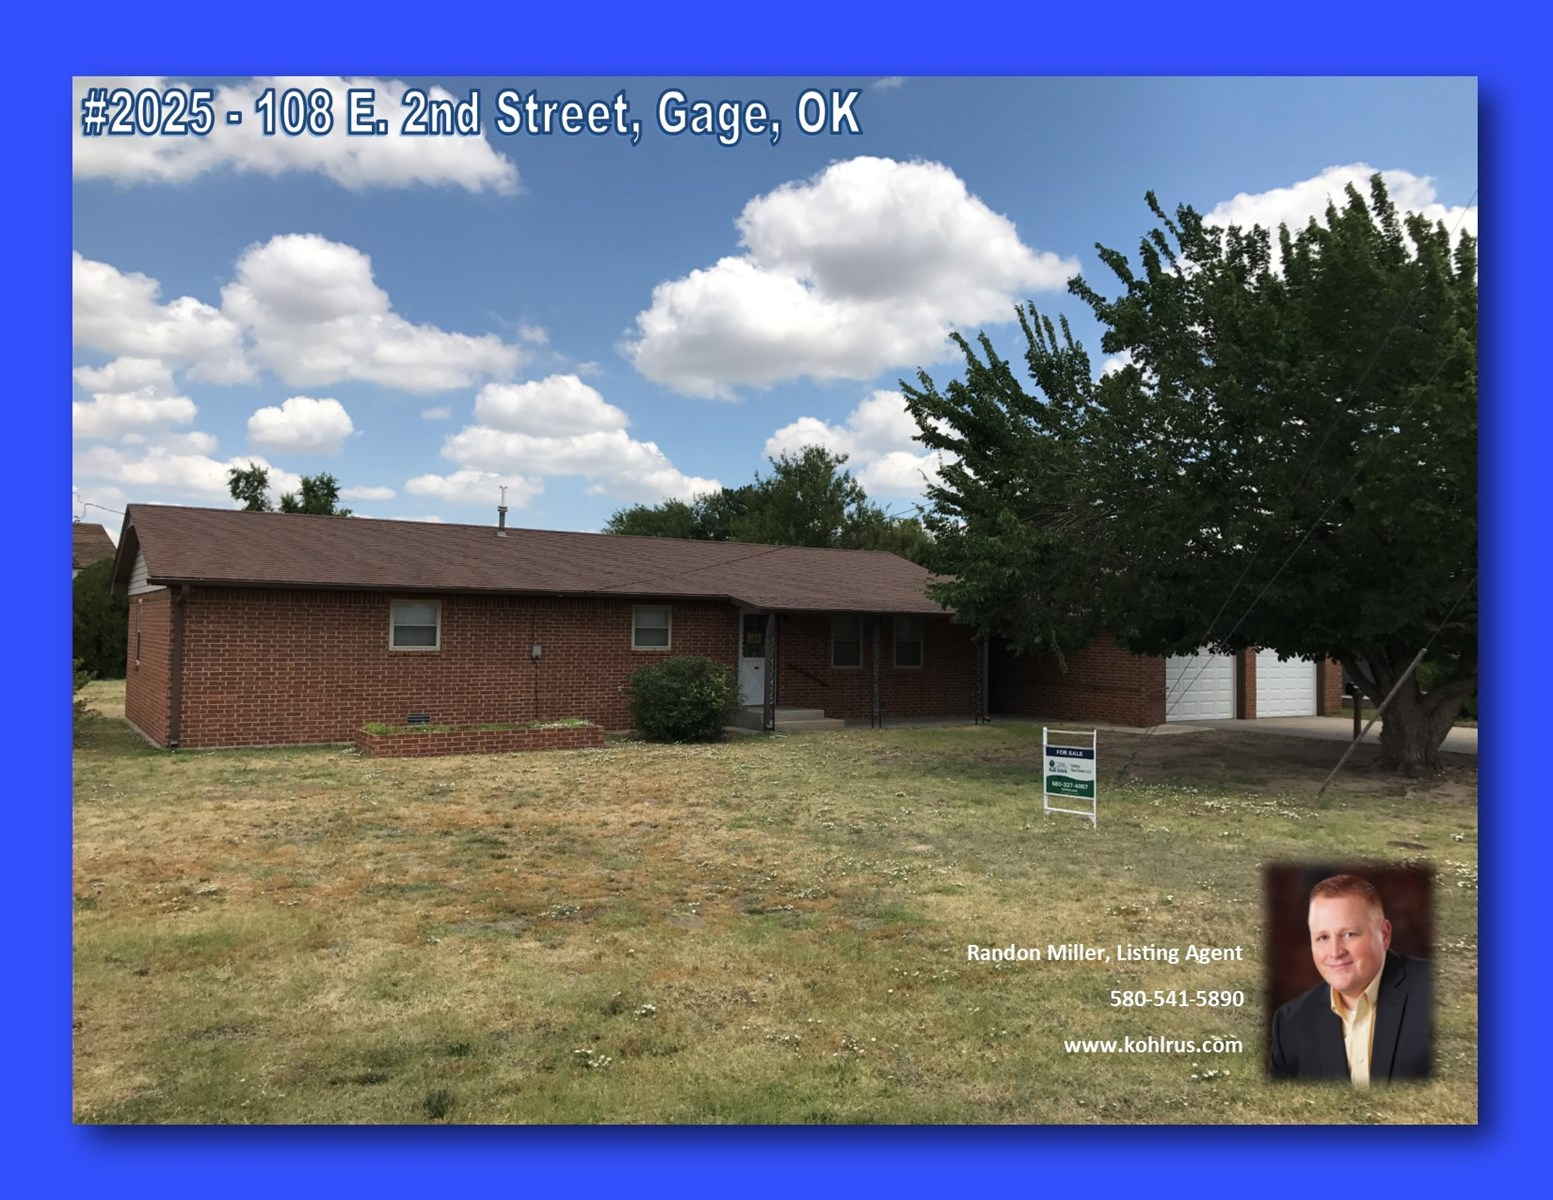 Home For Sale Gage, OK  Ellis County